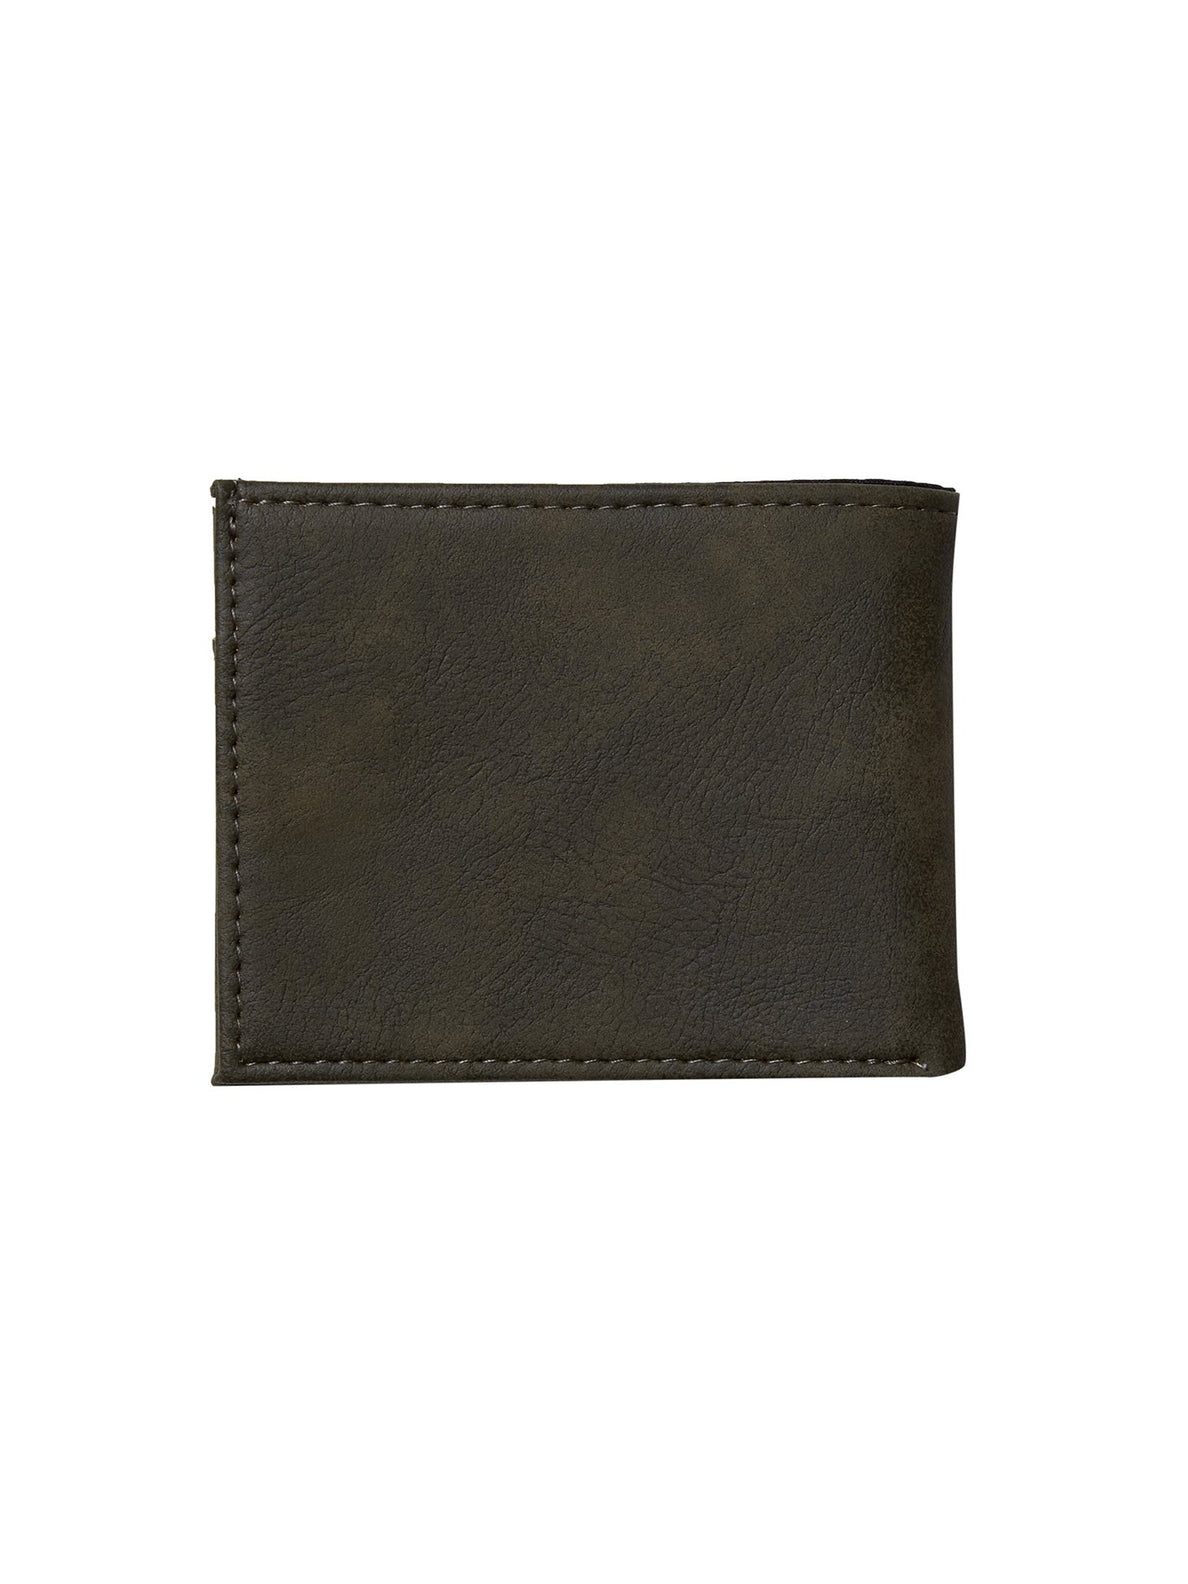 Slim Stone Wallet - Military